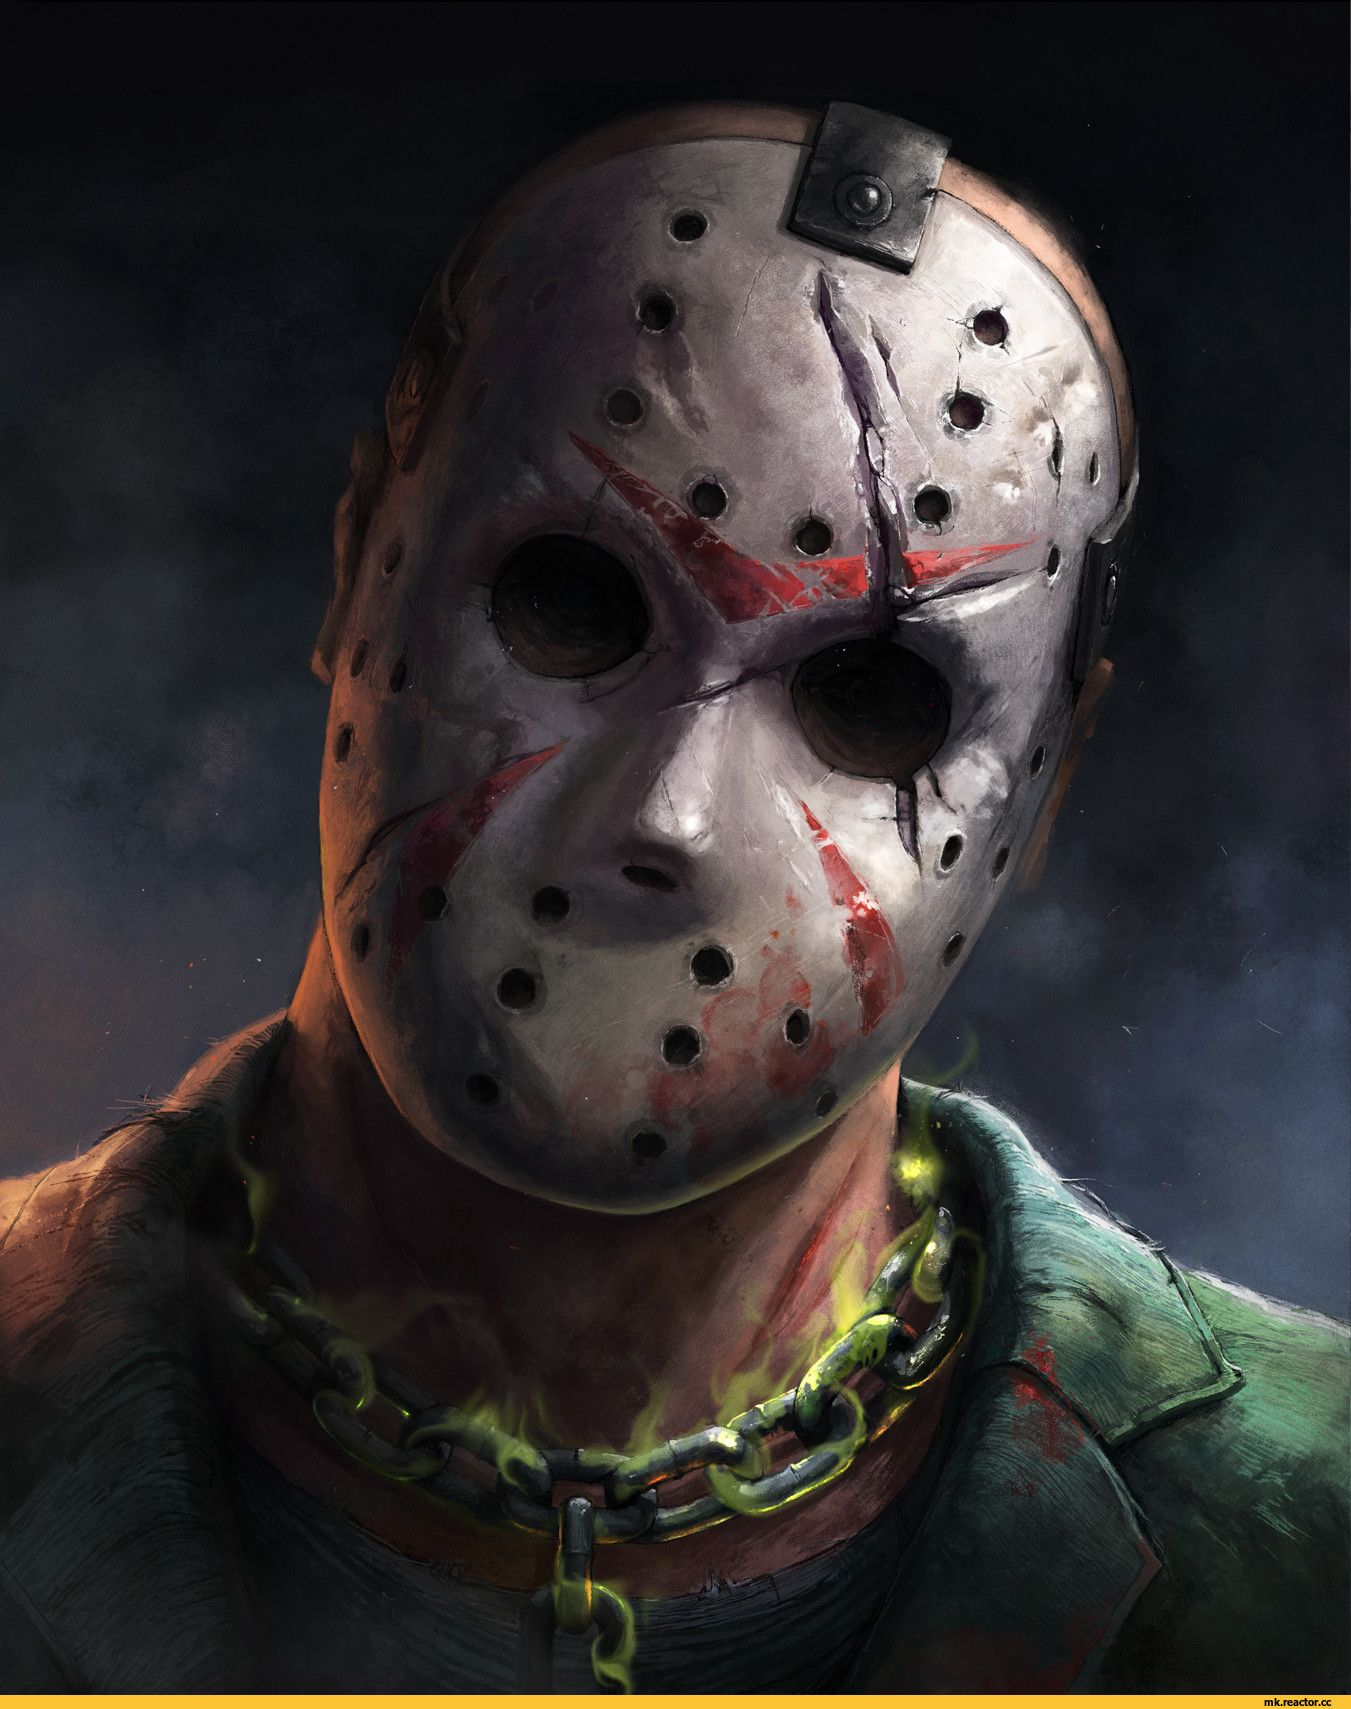 Img0 Joyreactor Cc Pics Post Full Jason Voorhees Friday The 13th Mortal Kombat X Mortal Kombat 3574488 Jason Voorhees Jason Voorhees Wallpaper Horror Movie Art